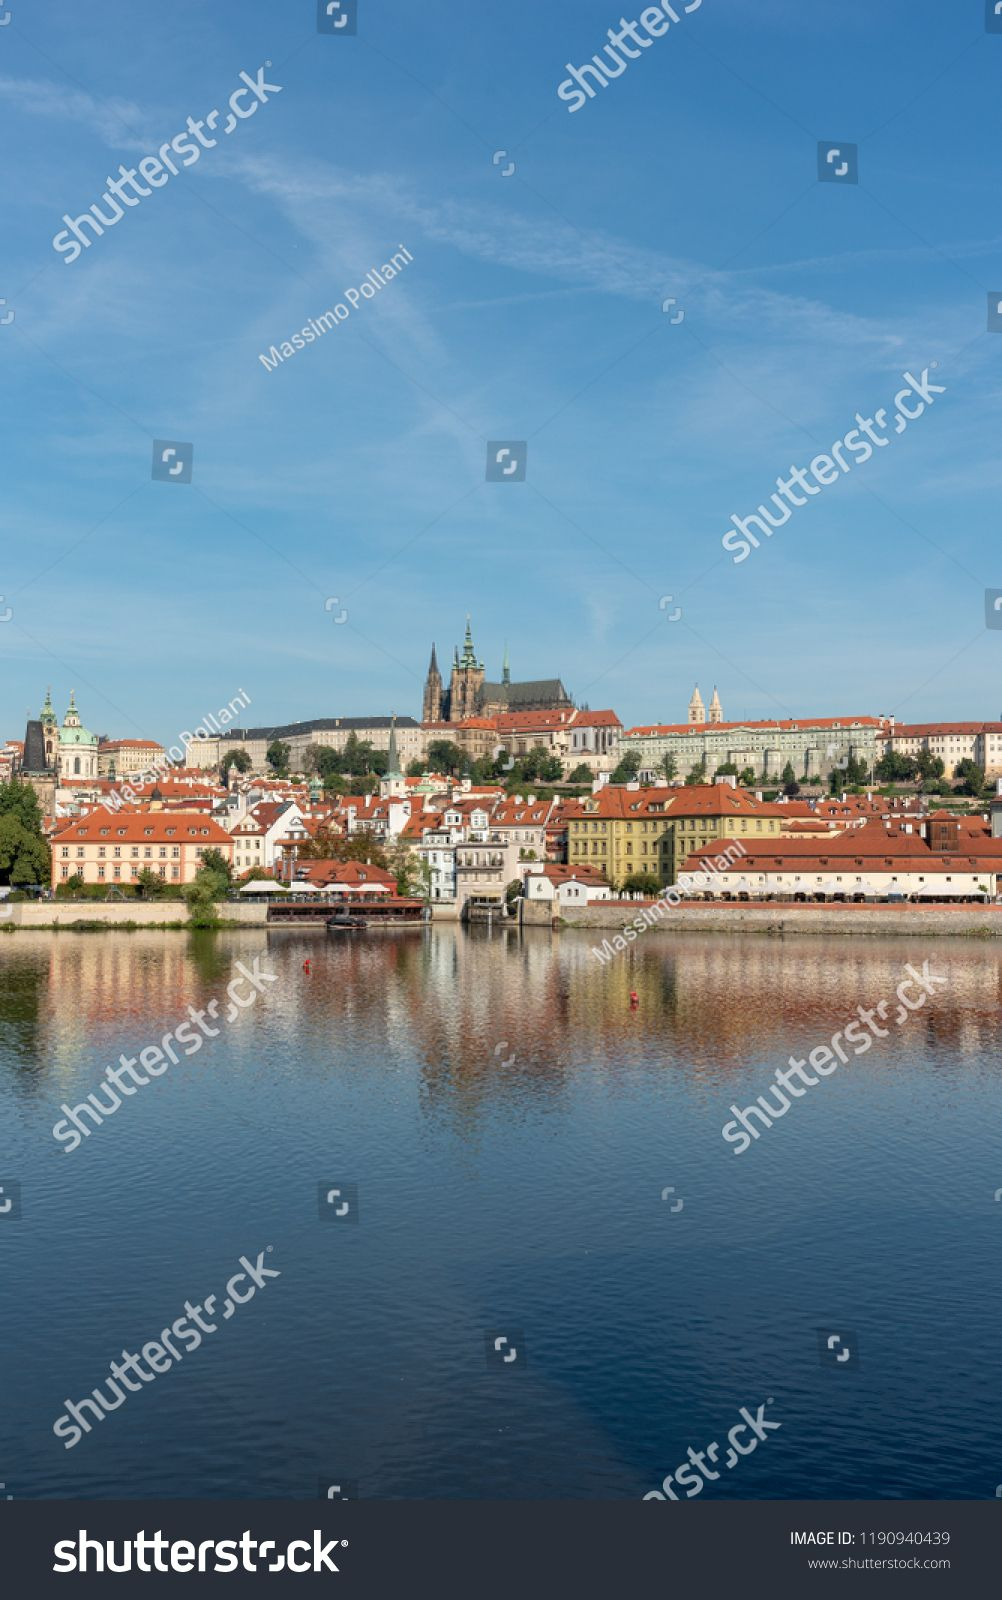 Panoramic View Of Prague Castle And St Vitus Cathedral In Prague Prague Castle Panoramic Views Castle